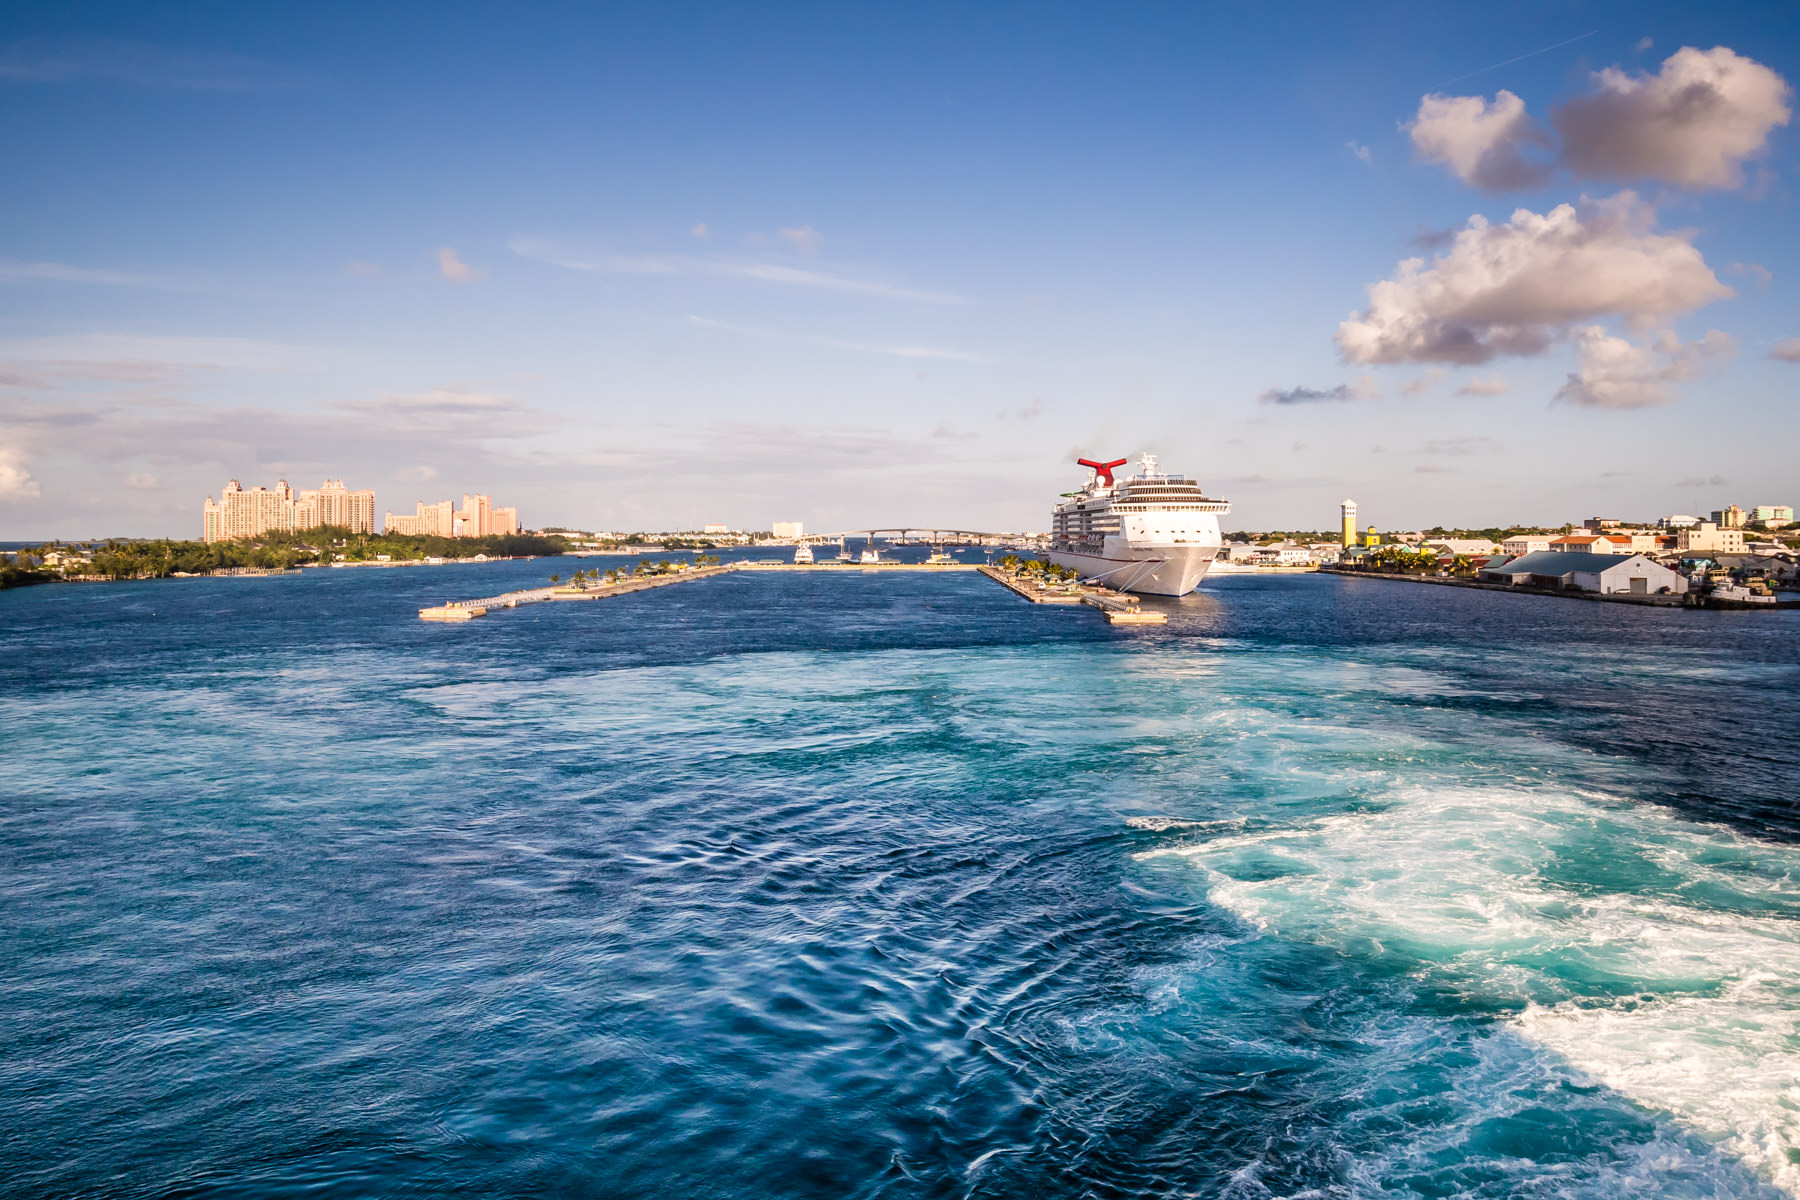 Nassau, Bahama's harbor, as seen from the deck of the cruise ship Carnival Magic as she sets sail, leaving behind her sister ship the Carnival Pride.